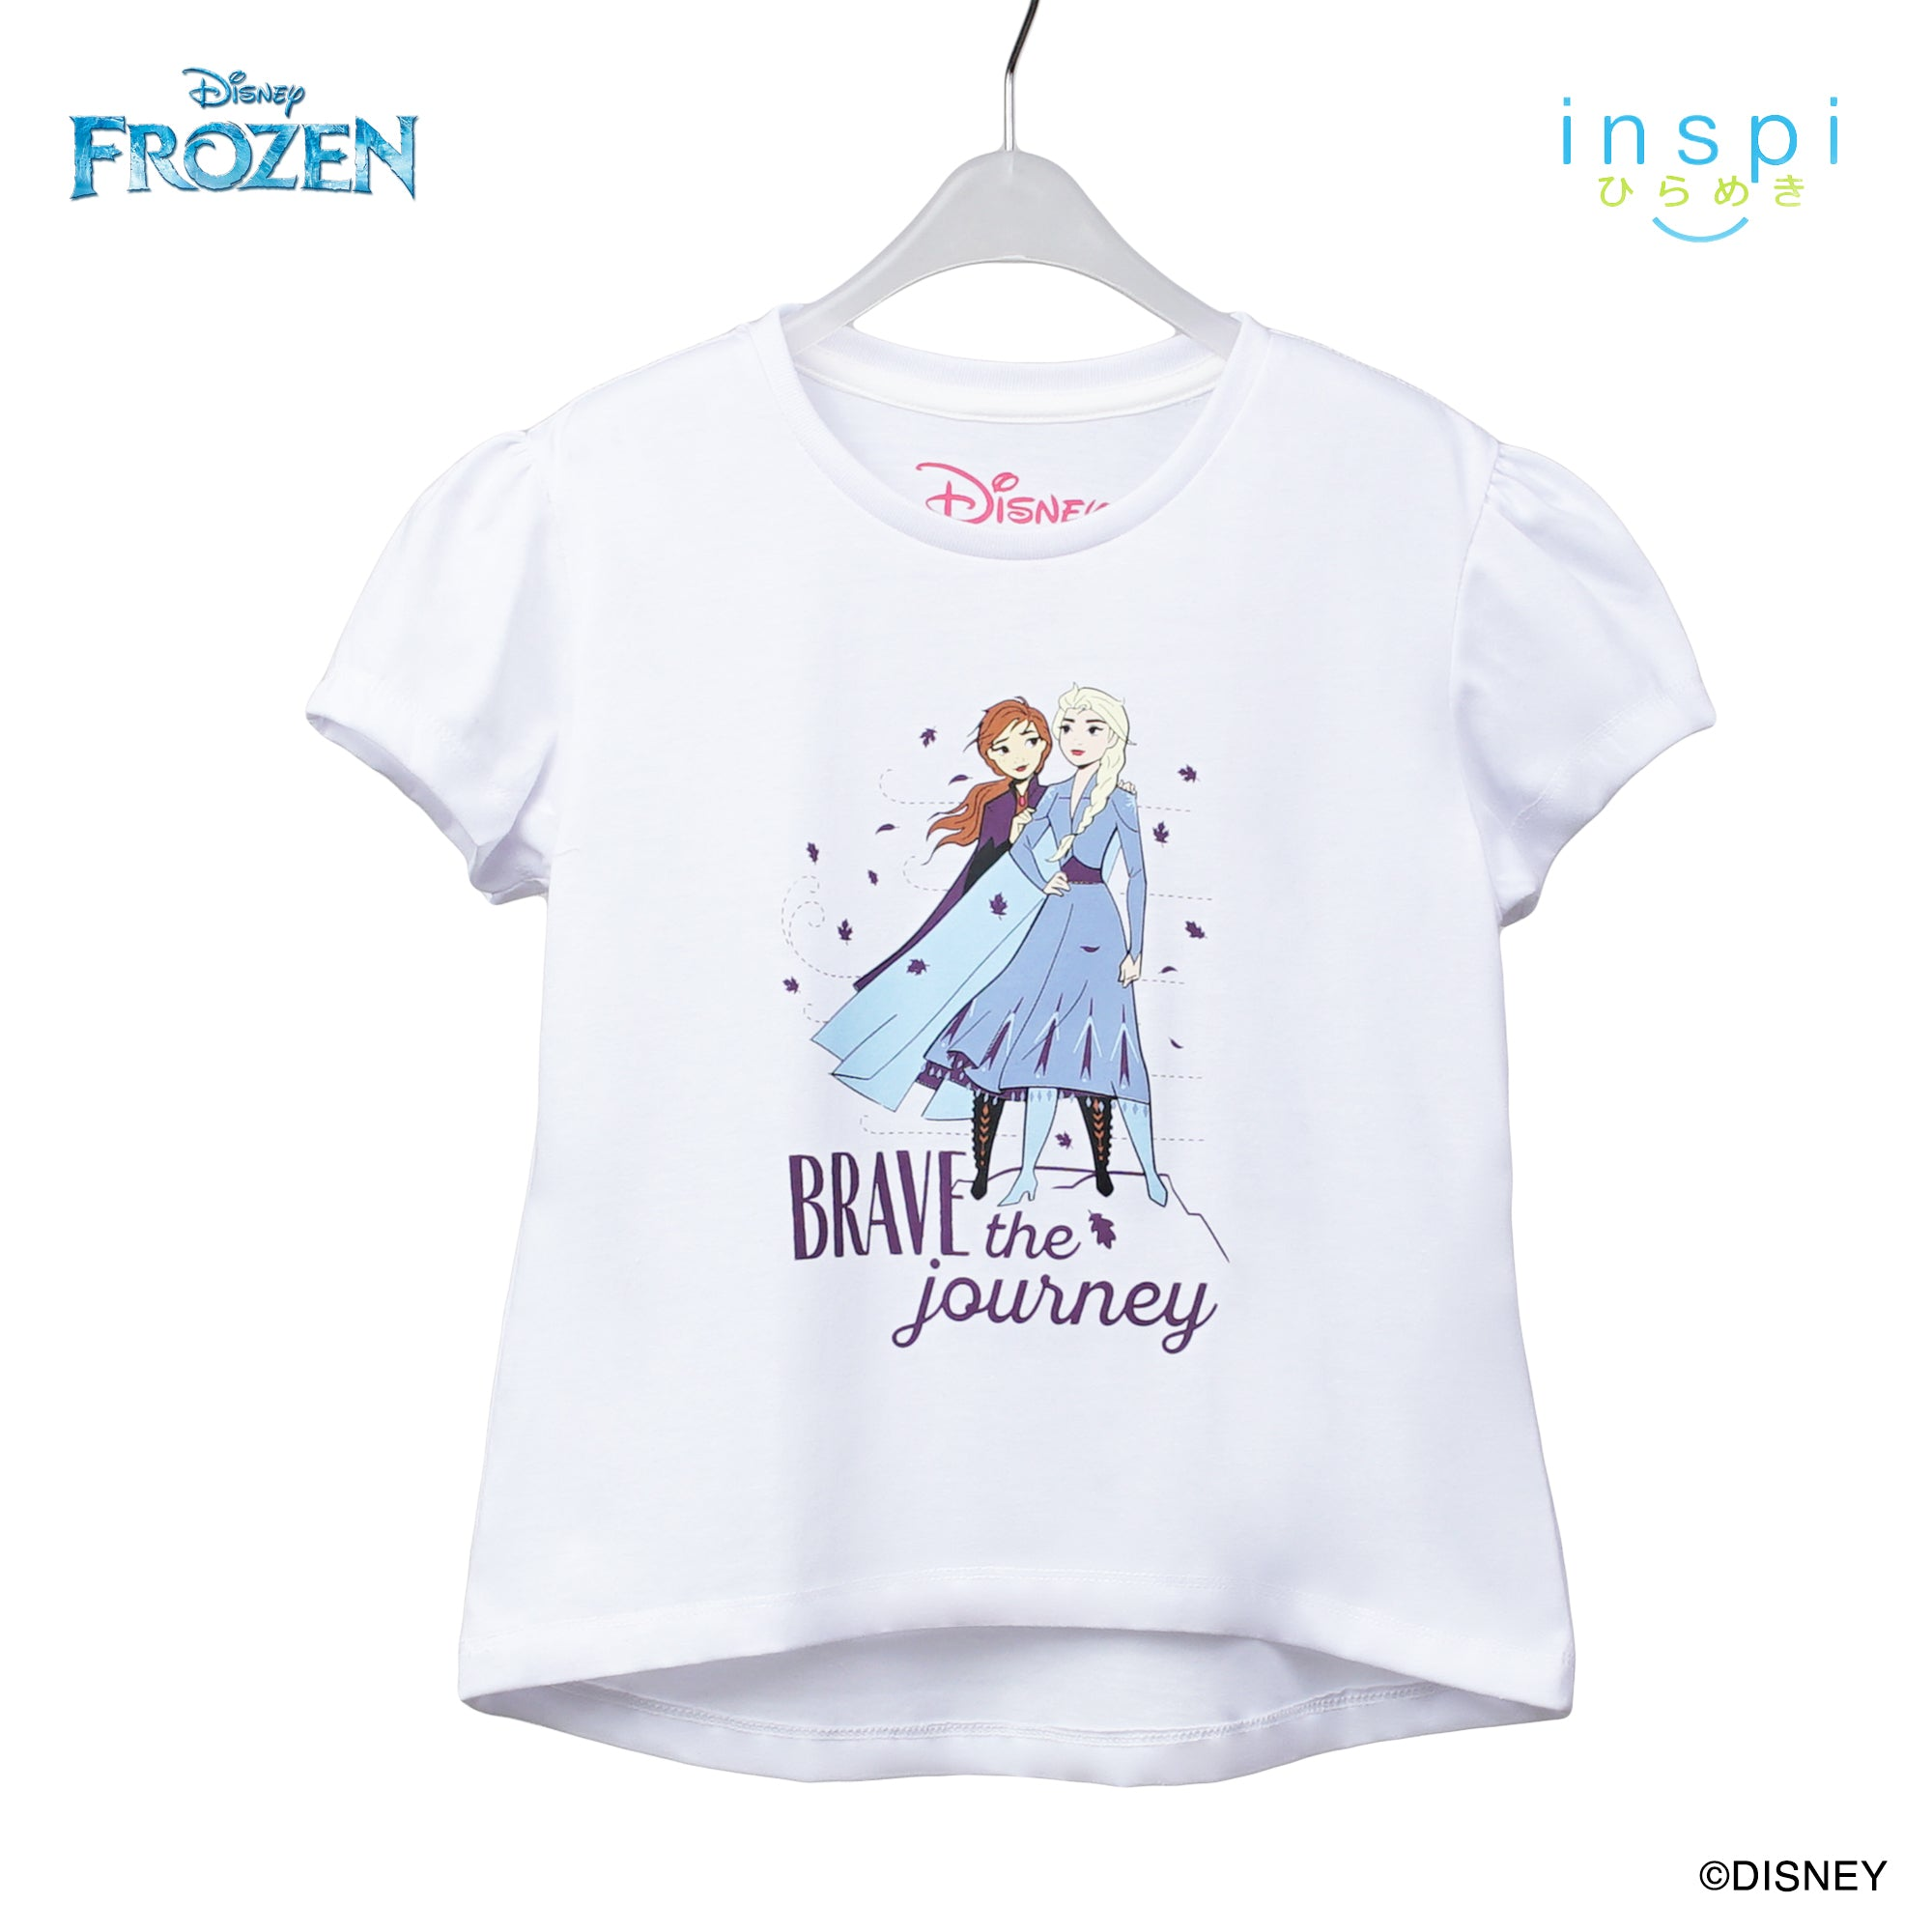 Disney Frozen Brave the Journey Tshirt in White for Girls Inspi Shirt